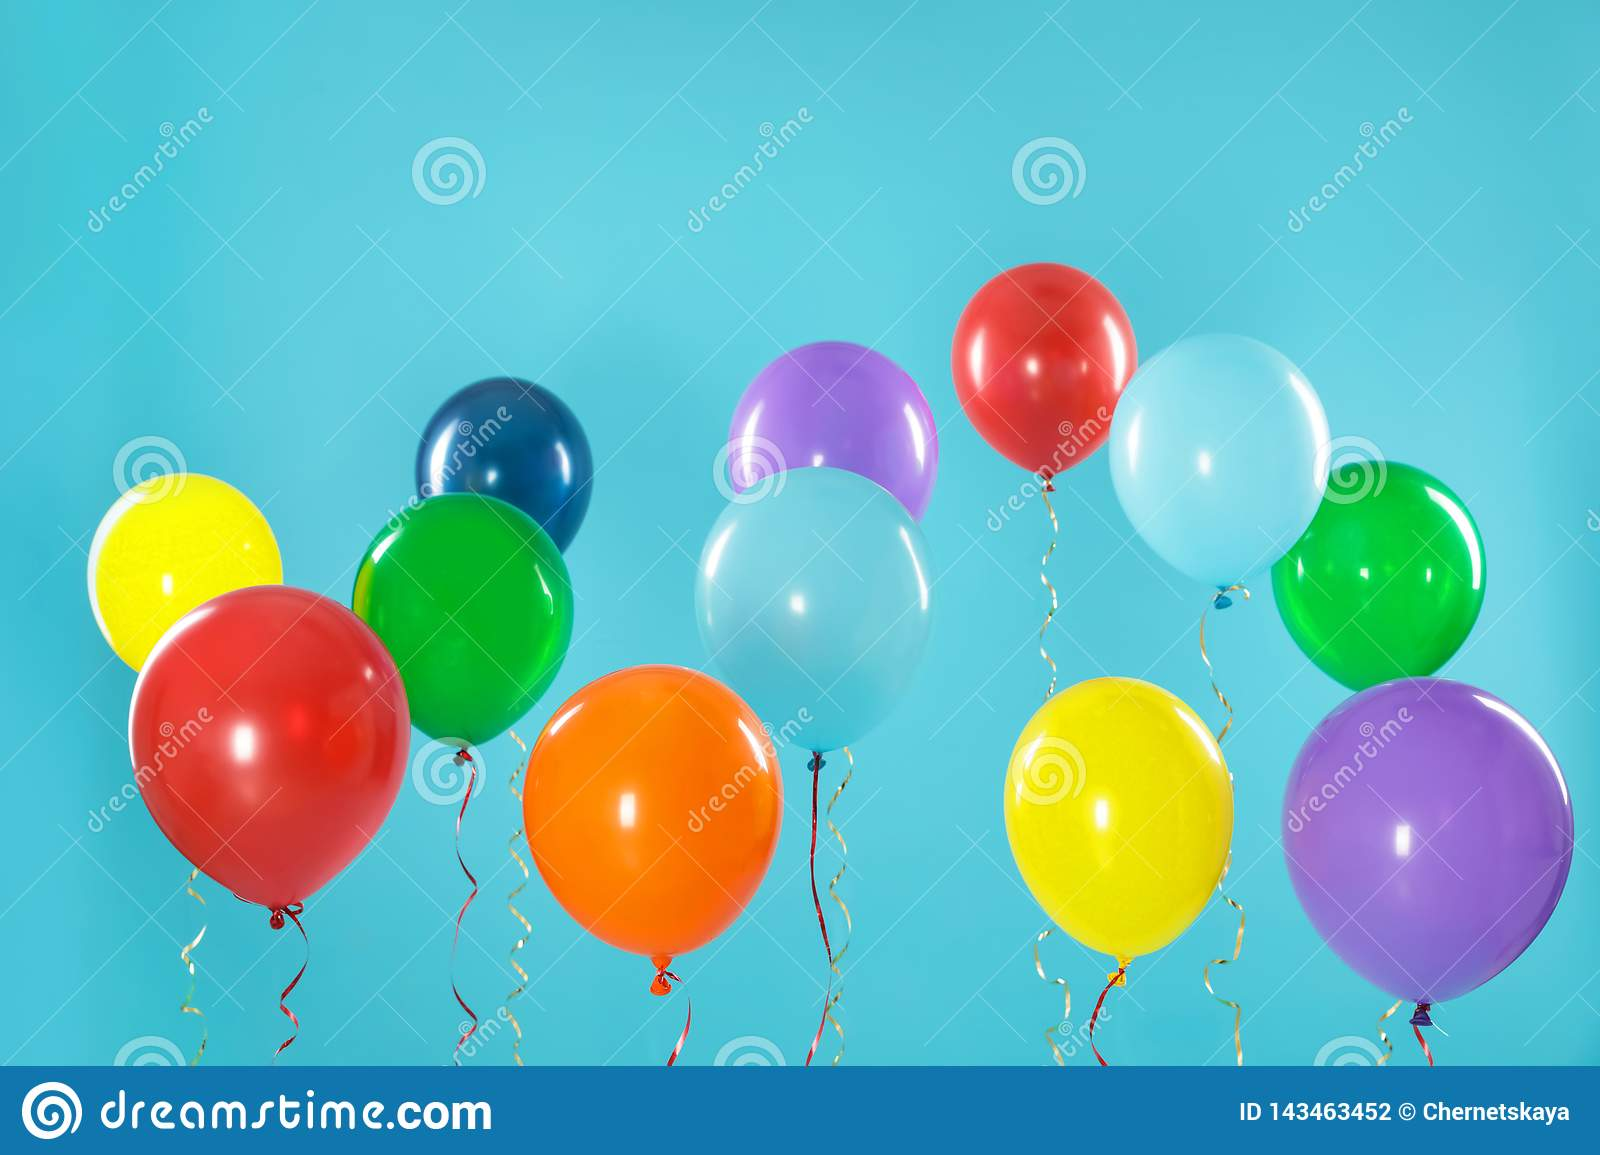 Bright balloons on background. Celebration time